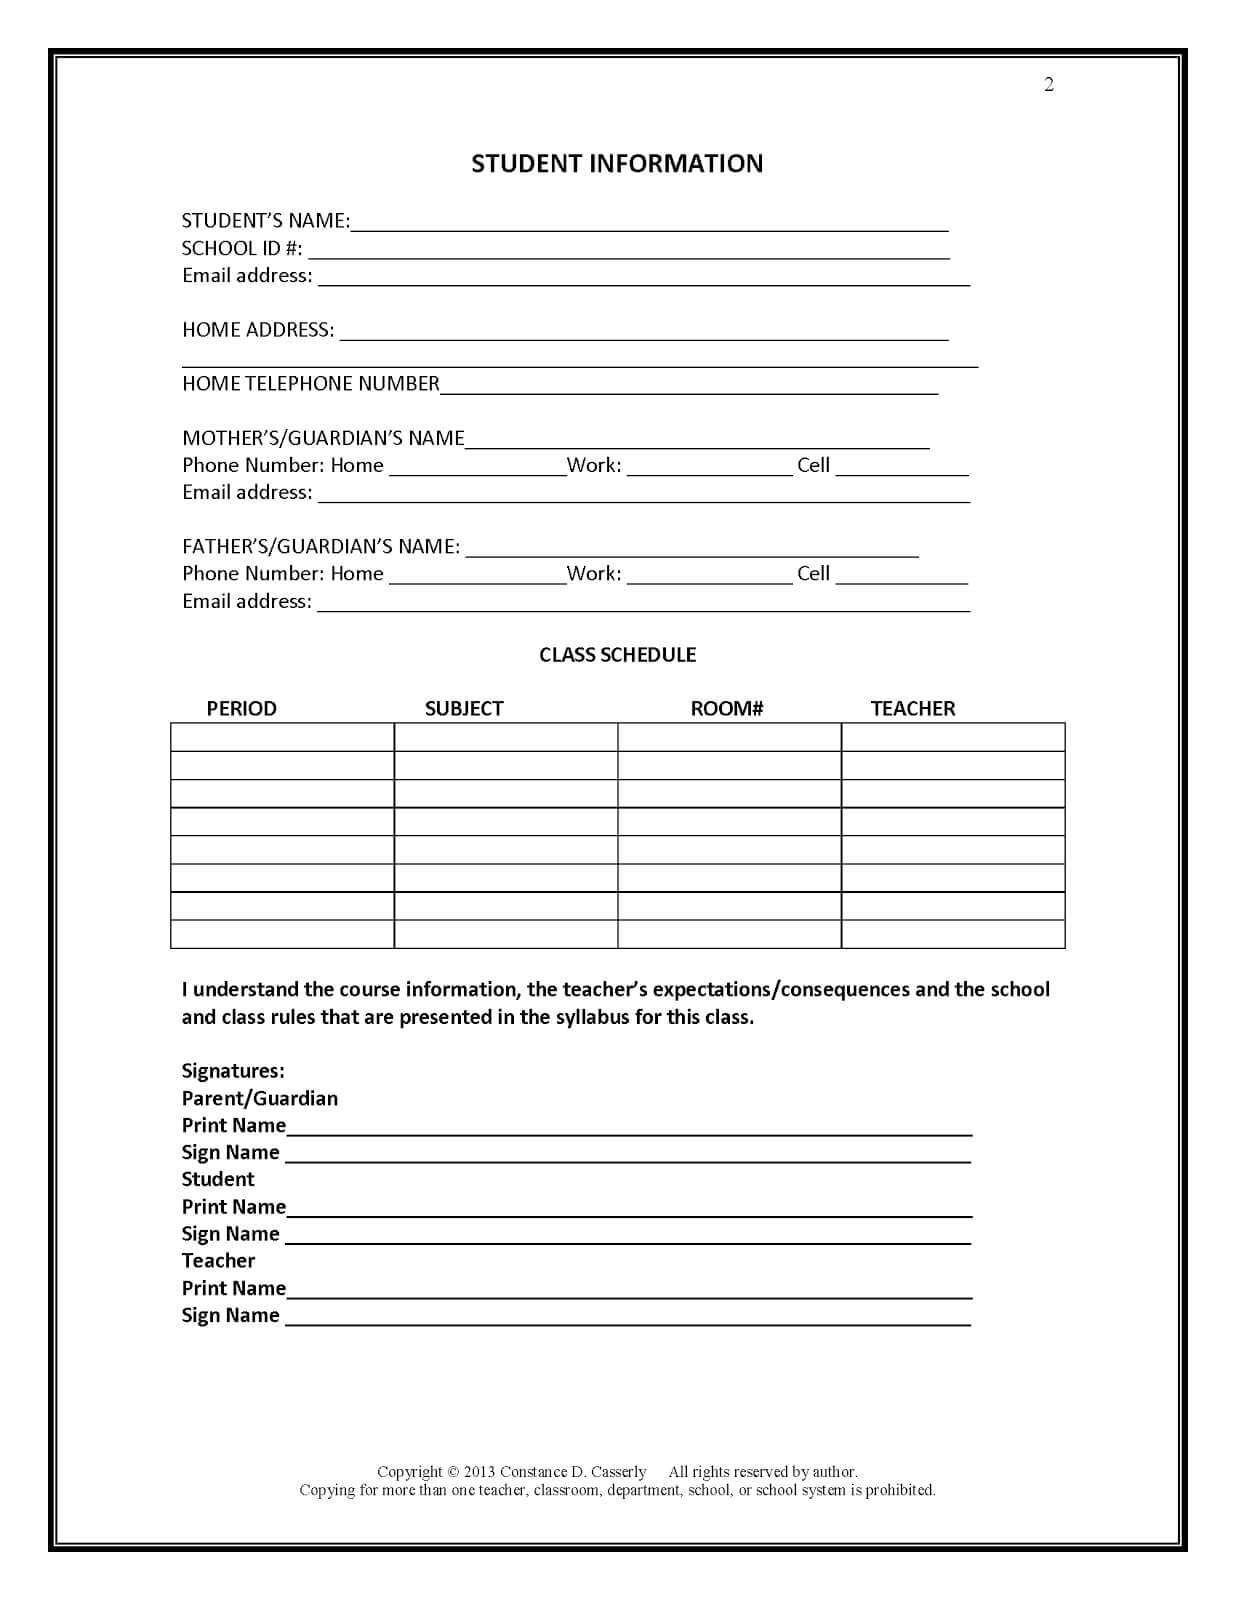 27 Images Of Student Information Form Template | Bfegy With Inside Student Information Card Template